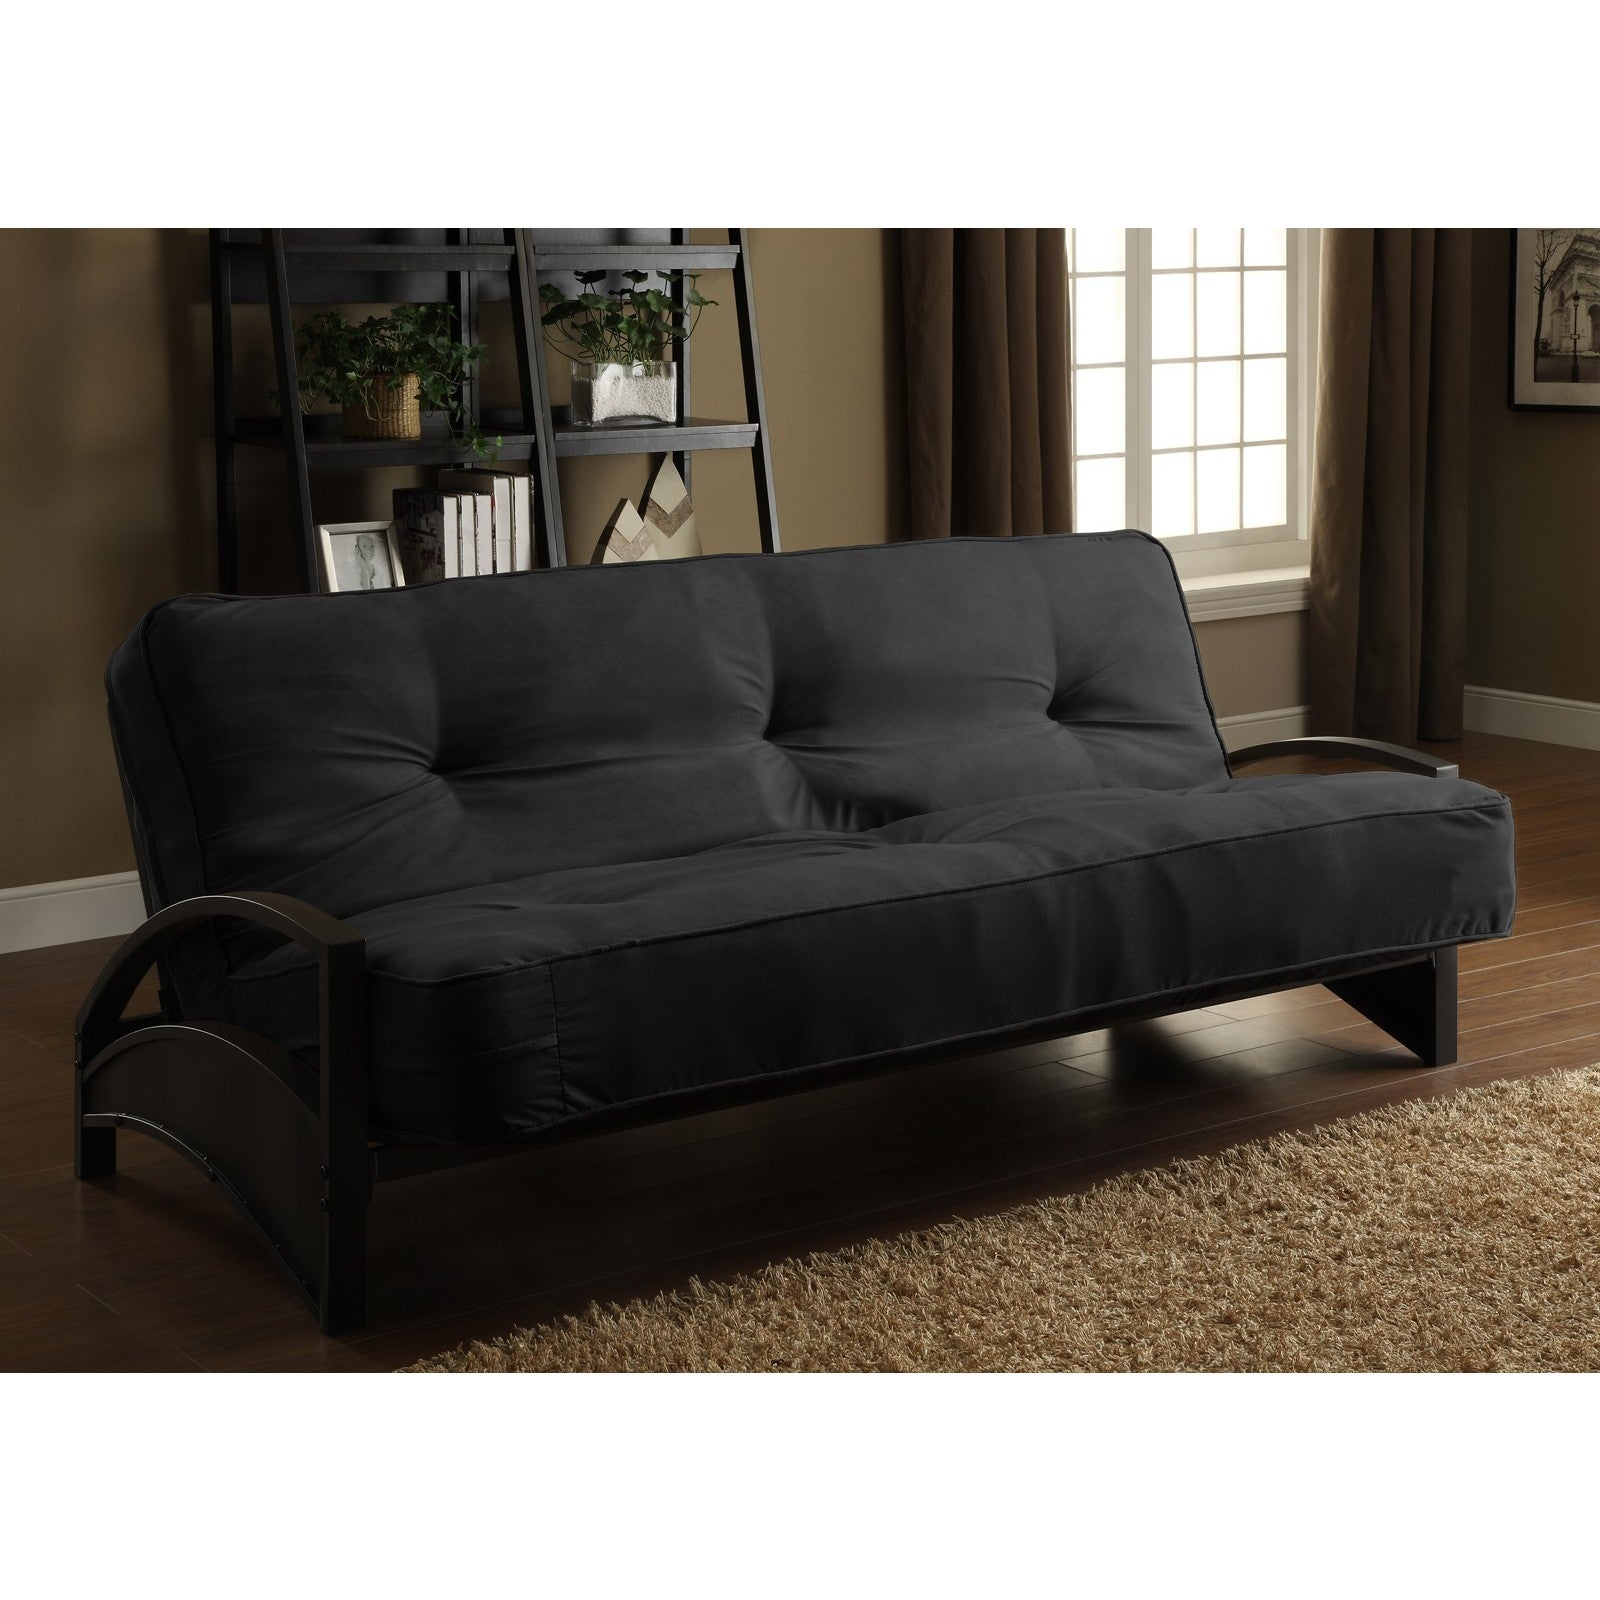 Dhp Alessa Black Metal Futon Frame On Free Shipping Today Com 16601883